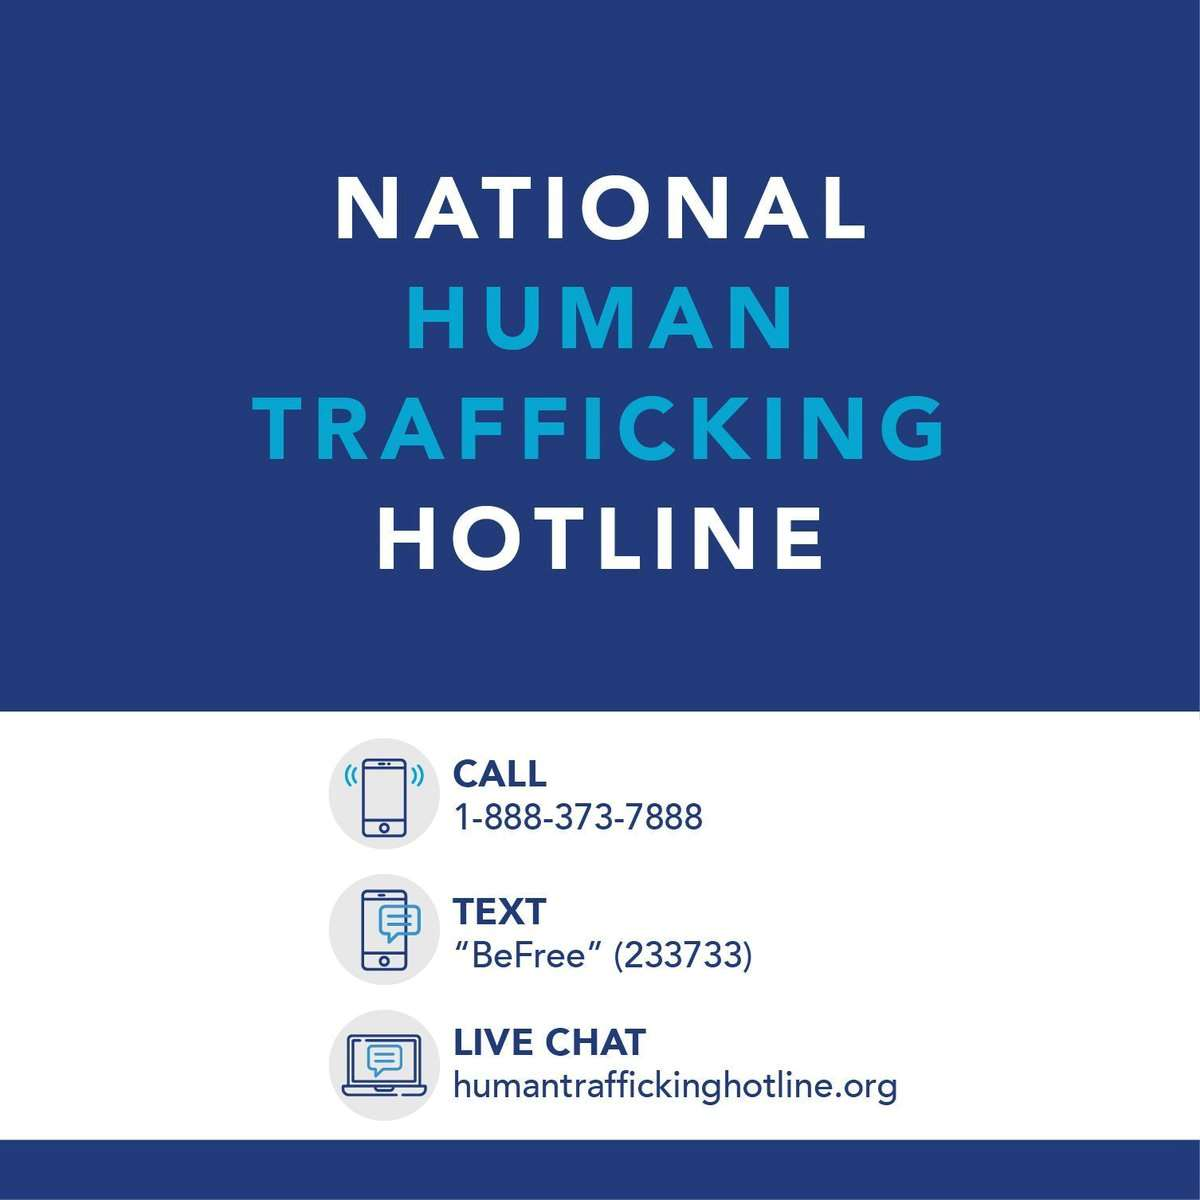 Natl Human Trafficking Hotline contact info